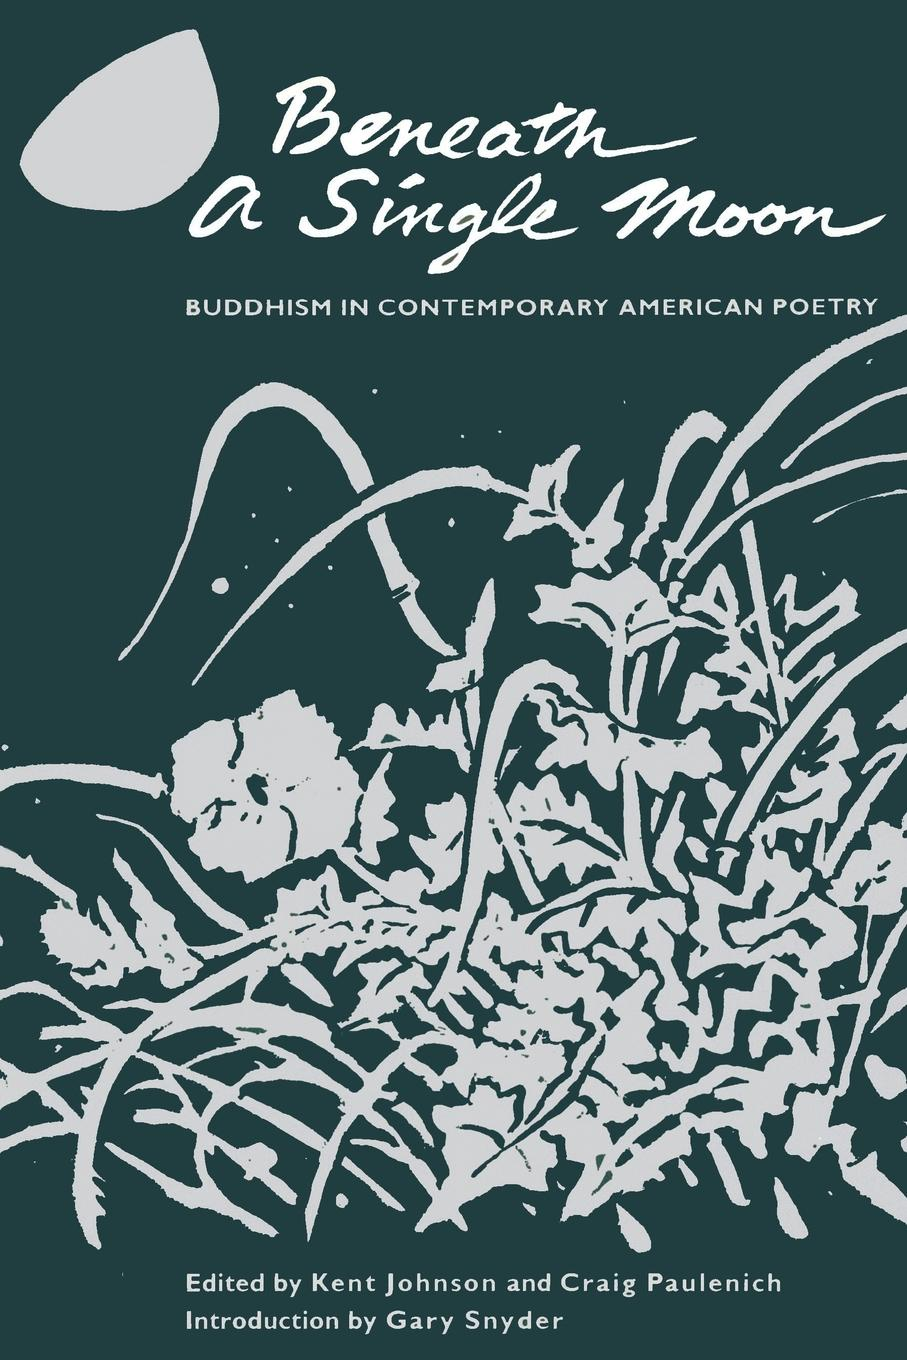 Beneath a Single Moon. Buddhism in Contemporary American Poetry.